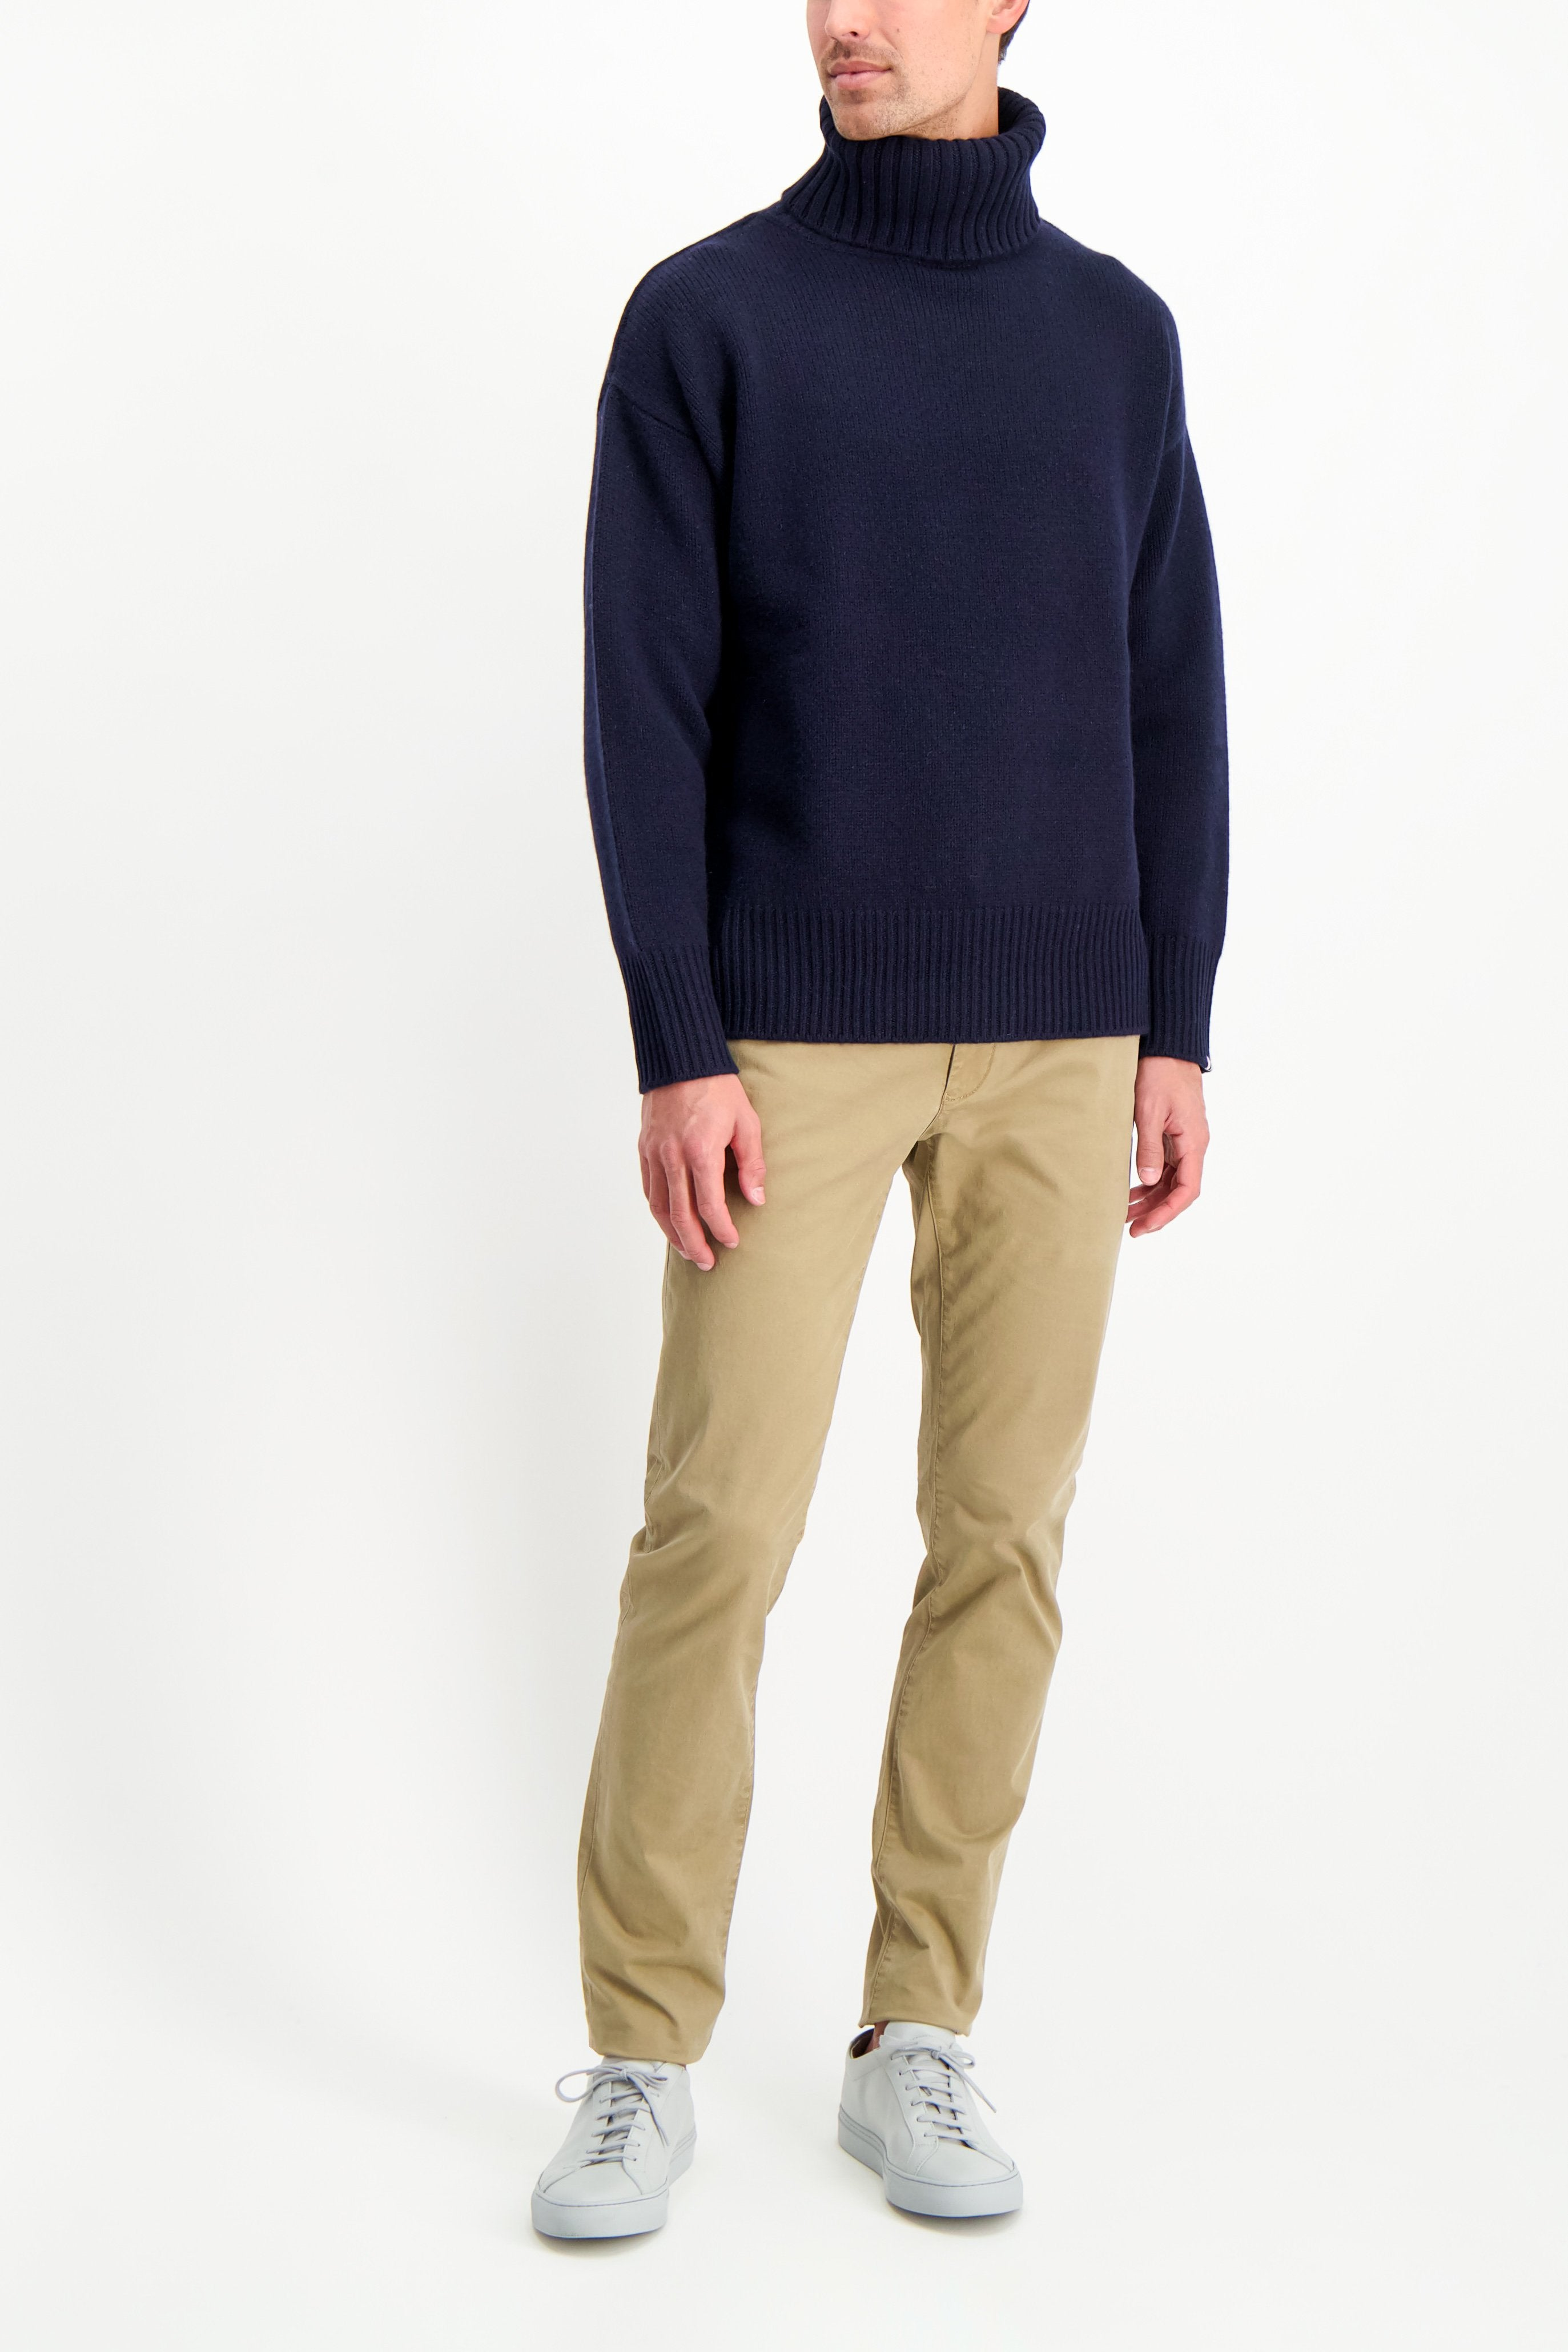 Full Body Image Of Model Wearing Extreme Cashmere N°20 Oversize Xtra Sweater Navy